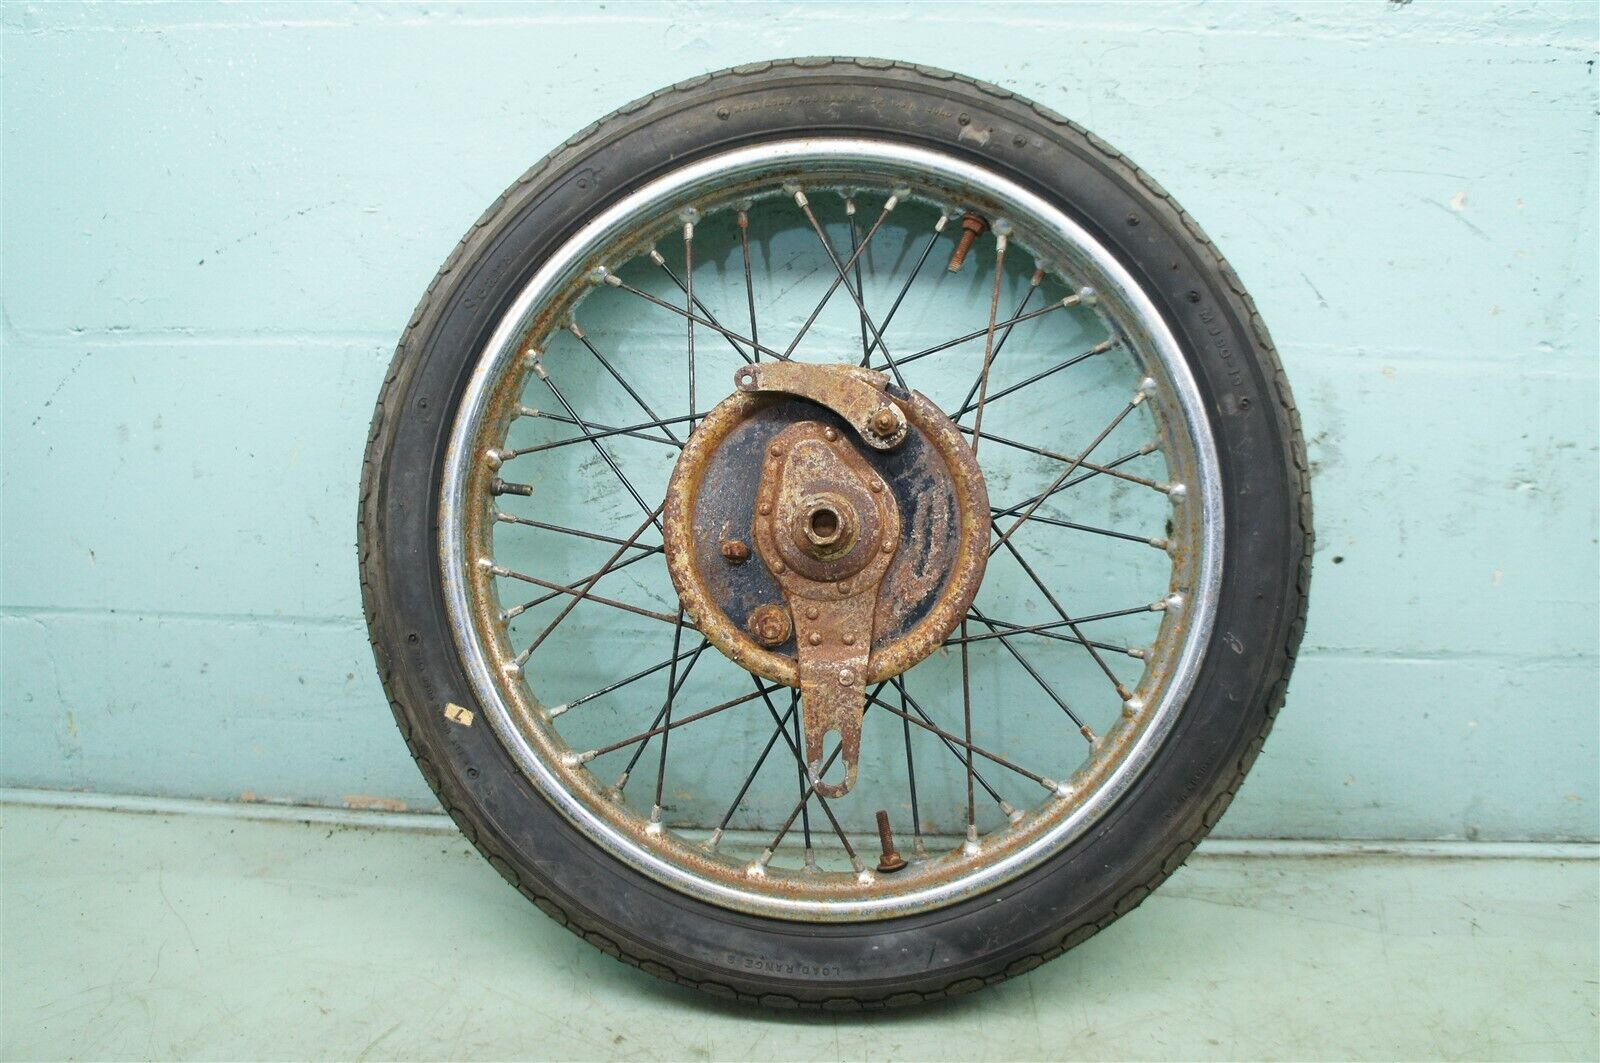 XM20 BSA M20 WM20 WD 500 W.M. W.D. 20 MW21 MILITARY *2189 FRONT RIM BRAKE WHEEL